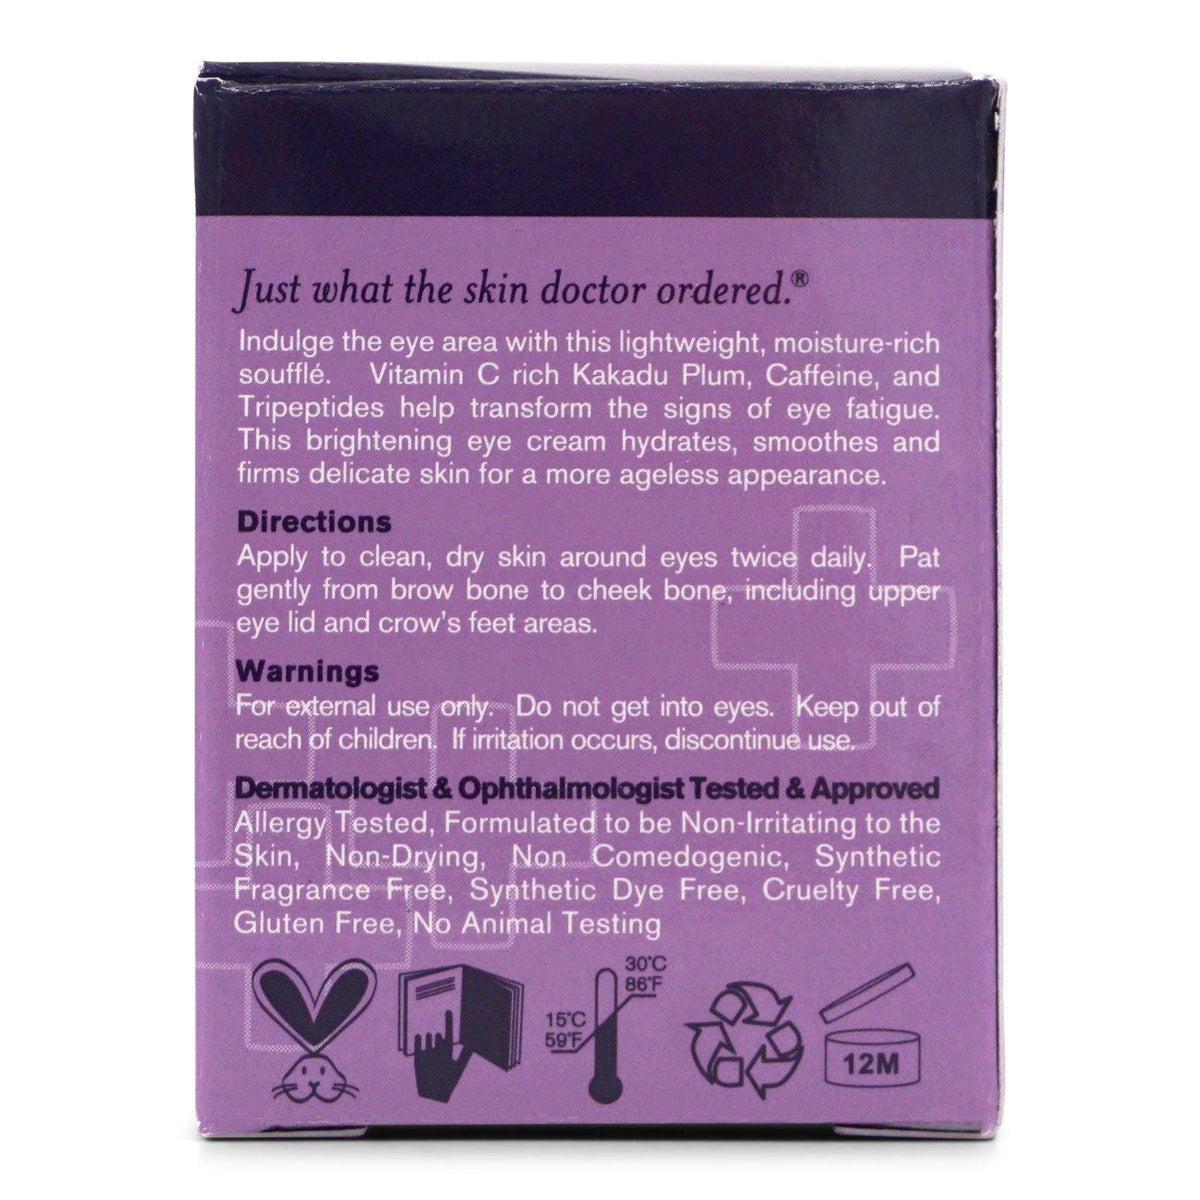 DermaDoctor Kakadu C Eye Souffle - (15ml/0.5oz) (12/cs)